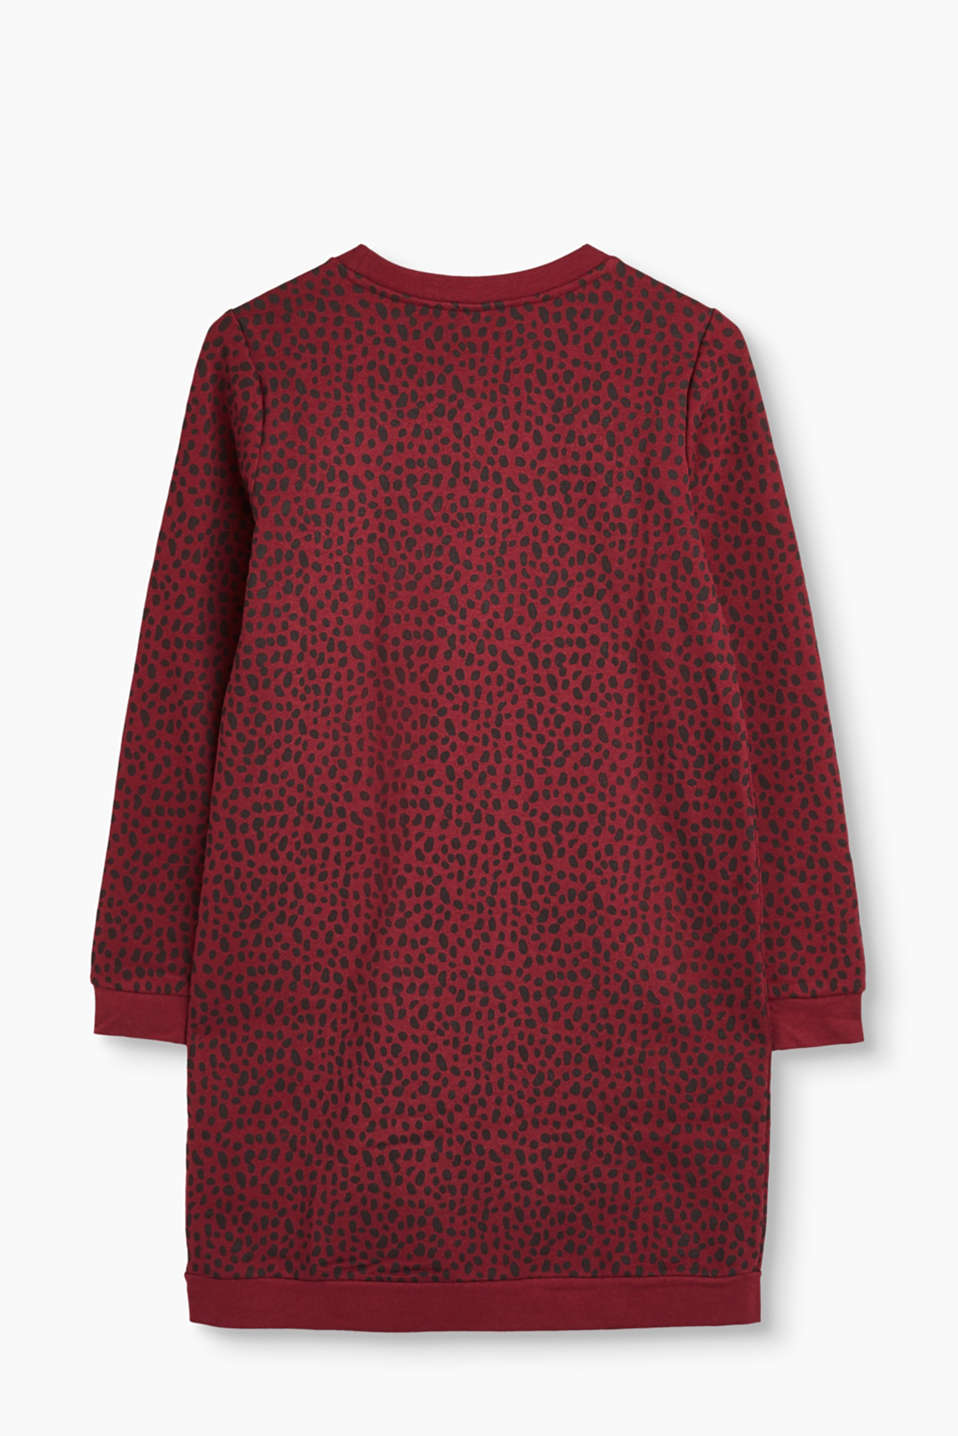 Embroidered sweatshirt dress, 100% cotton